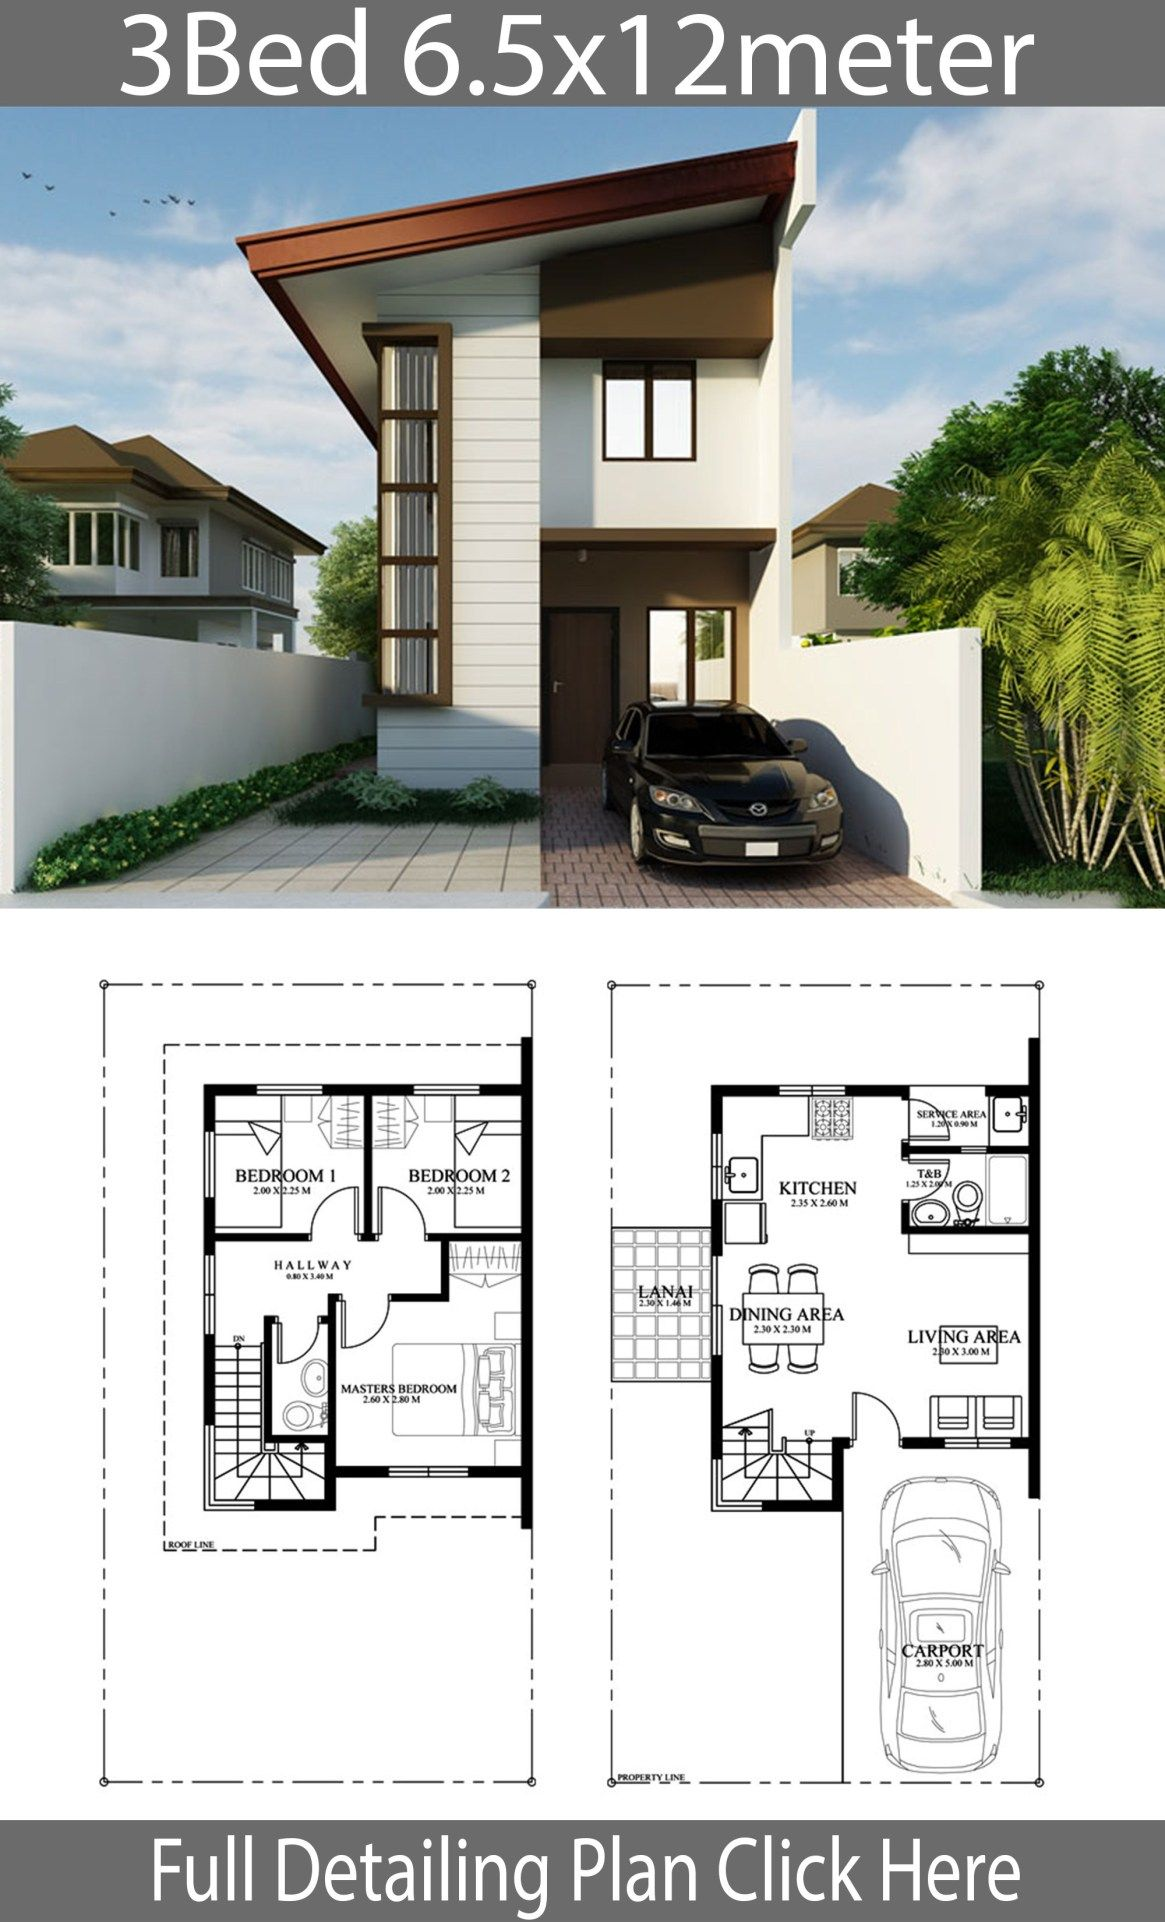 Small Home Design Plan 6 5mx12m With 3 Bedrooms Home Design With Plansearch Model House Plan Small House Design Plans Architectural House Plans